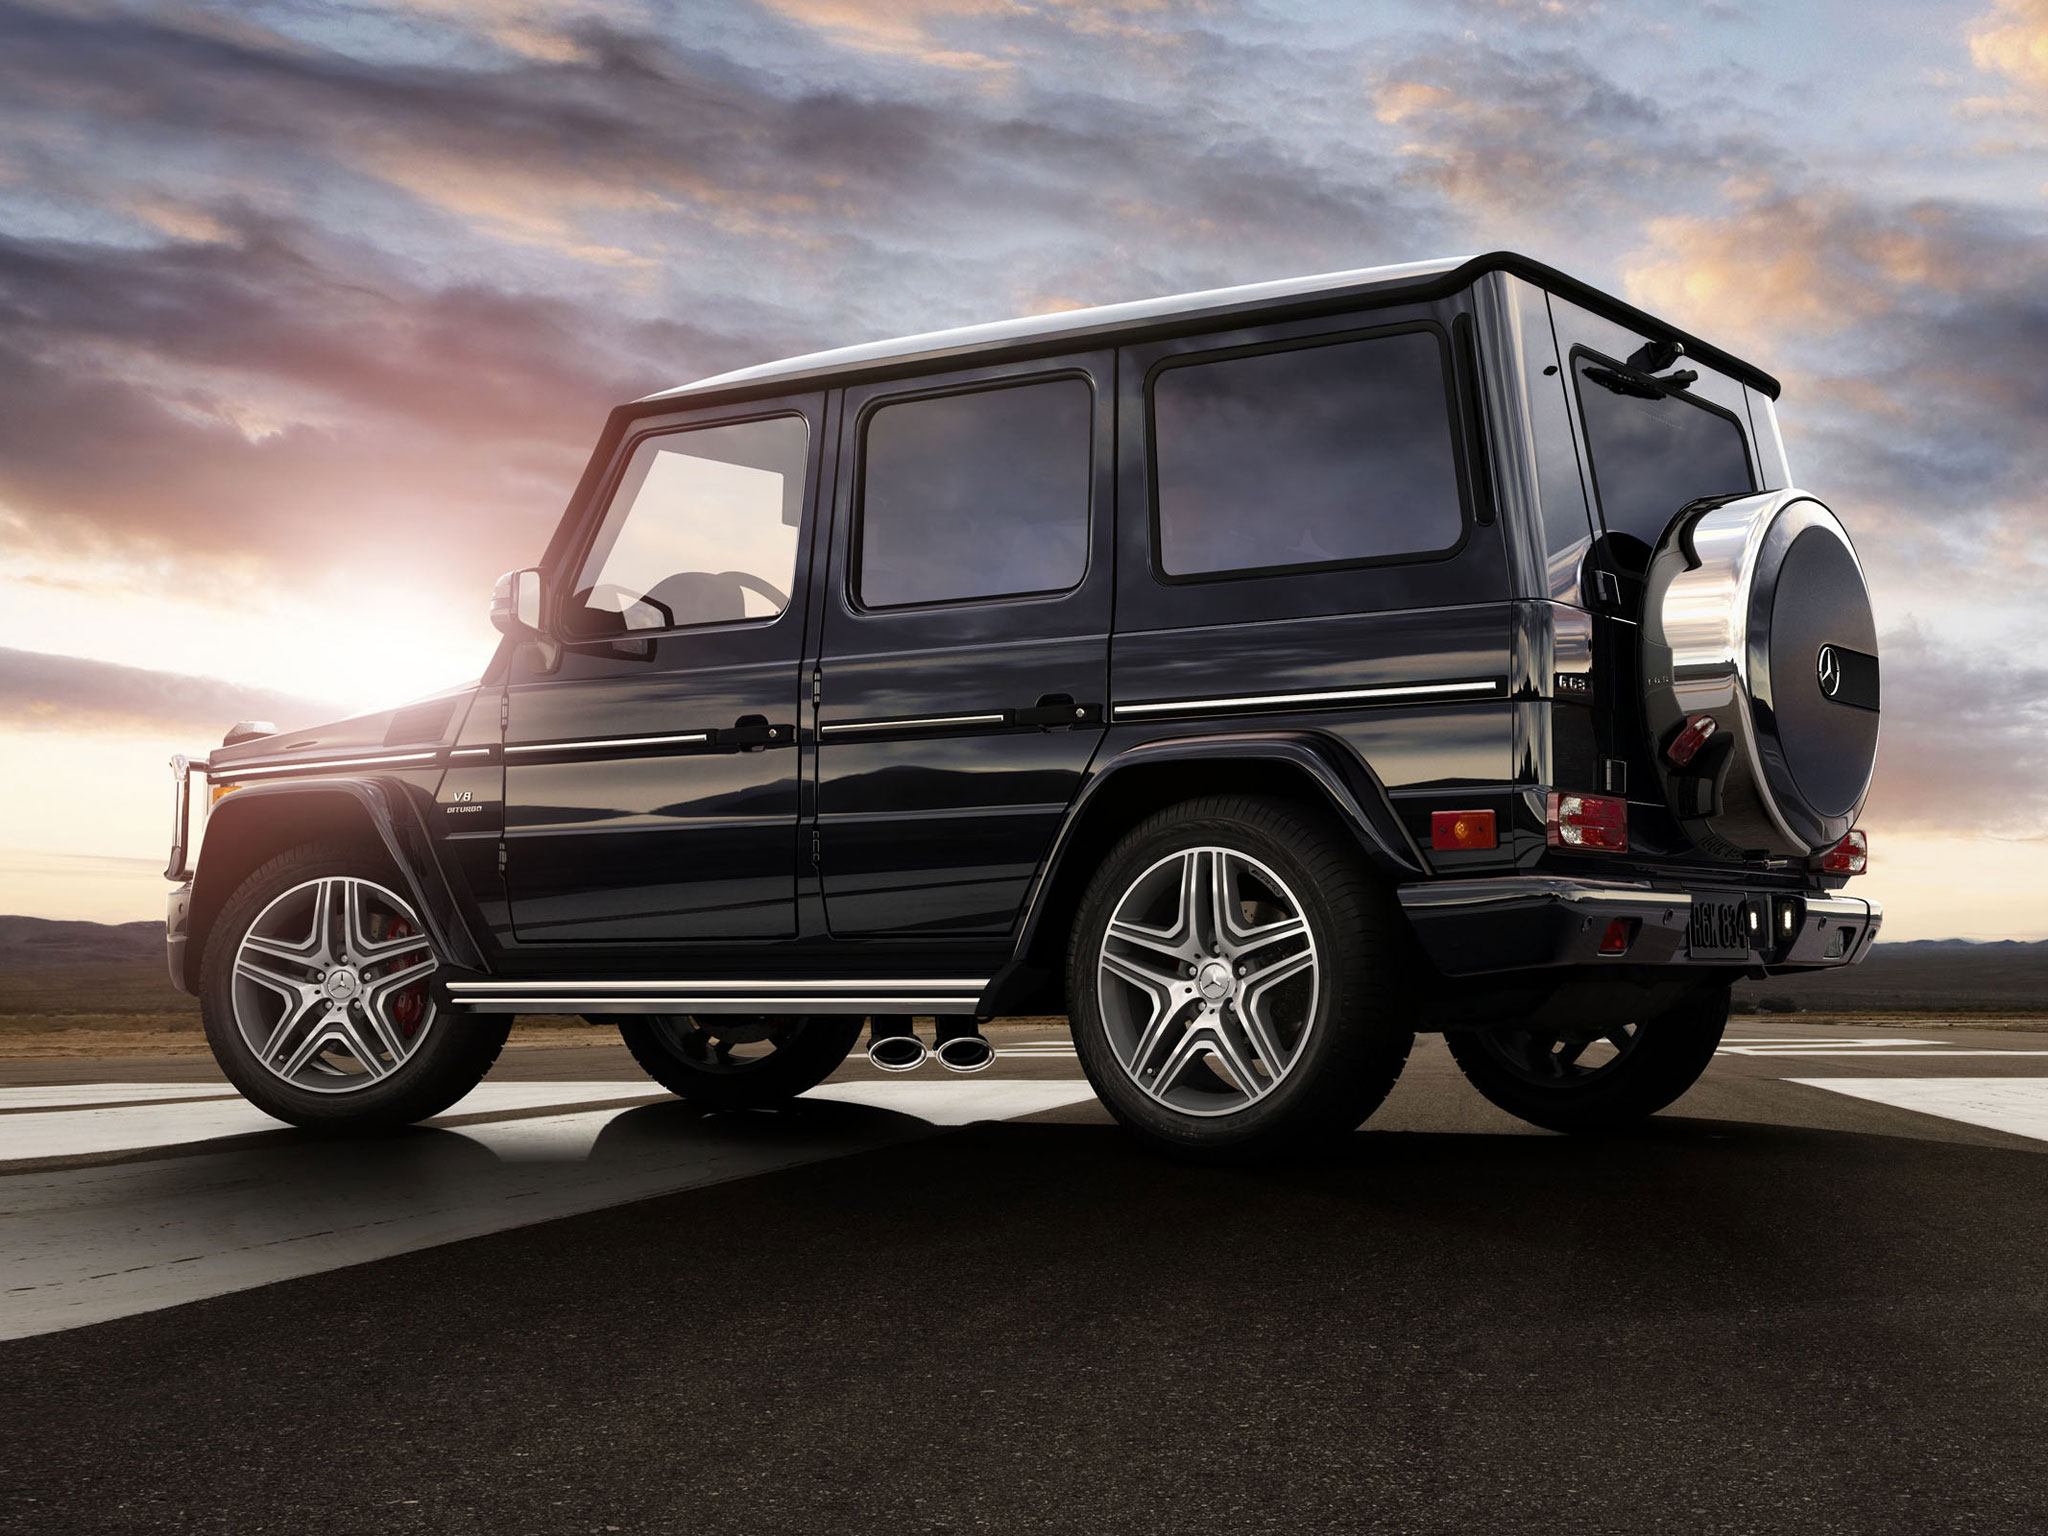 Amg G63 In Black With 20 Inch Wheels